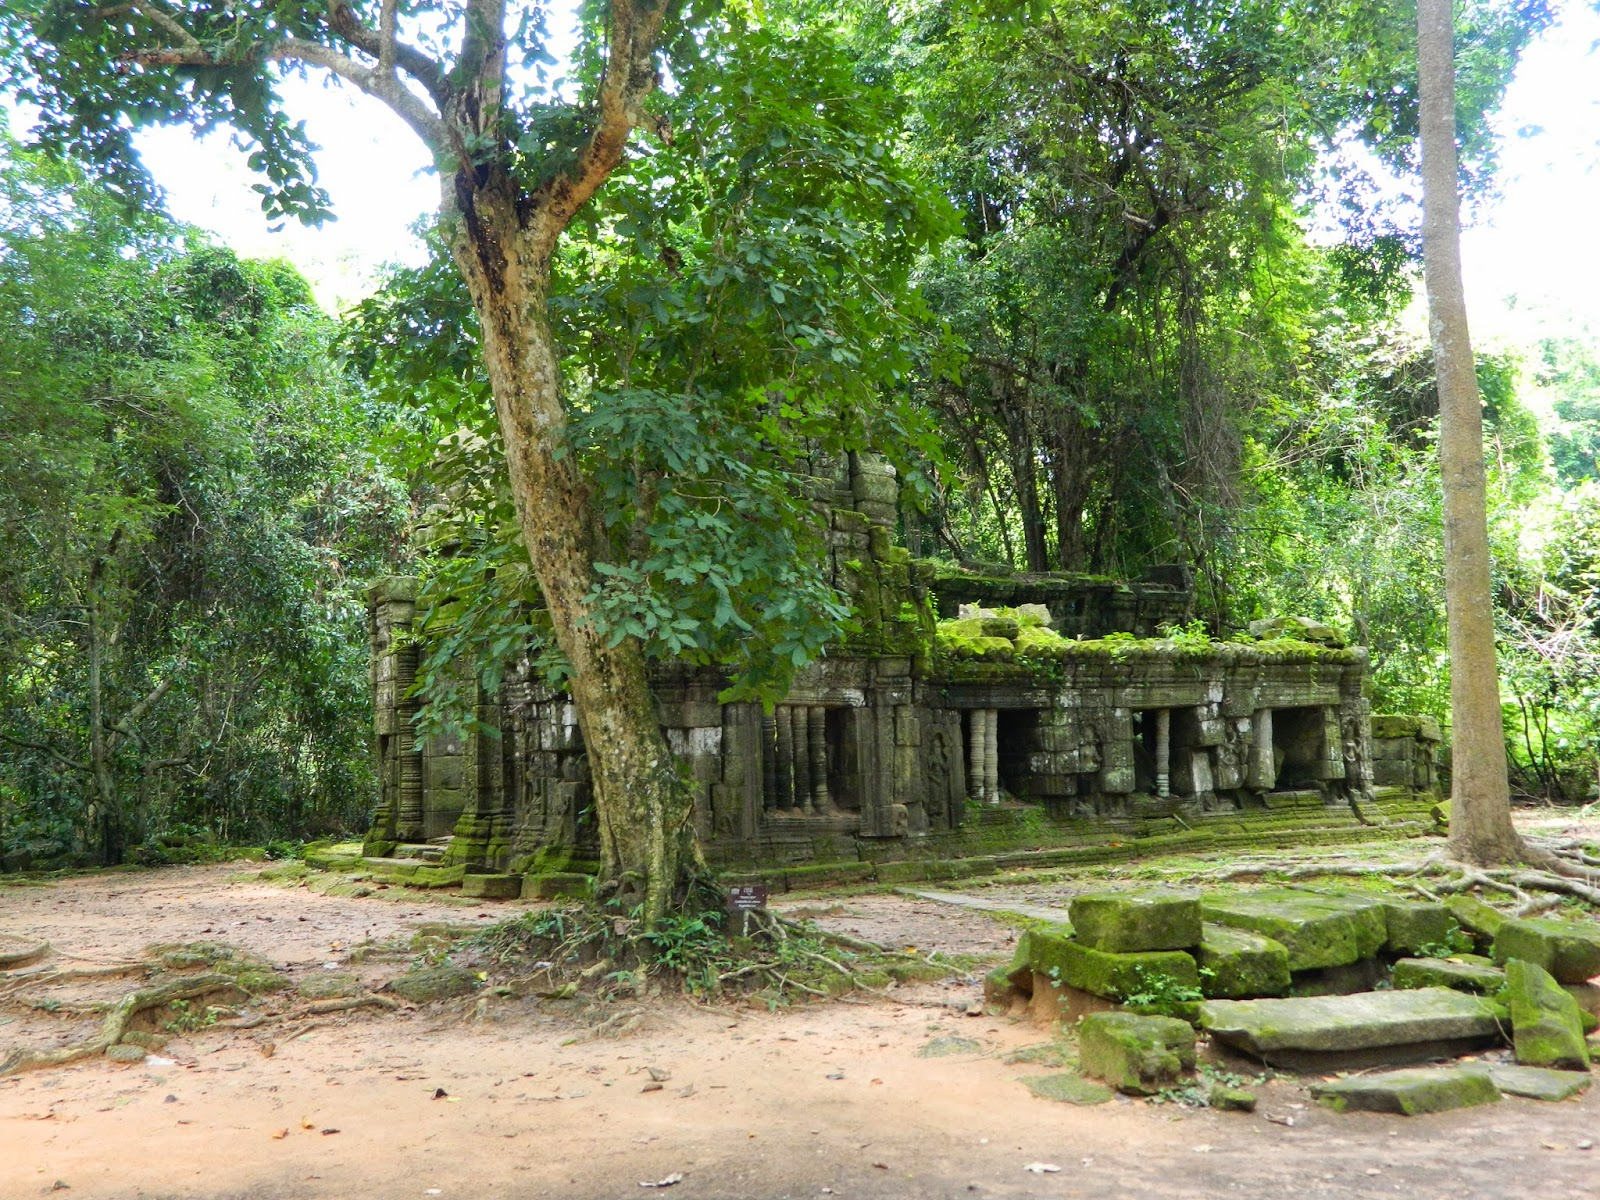 Ruins near the temple